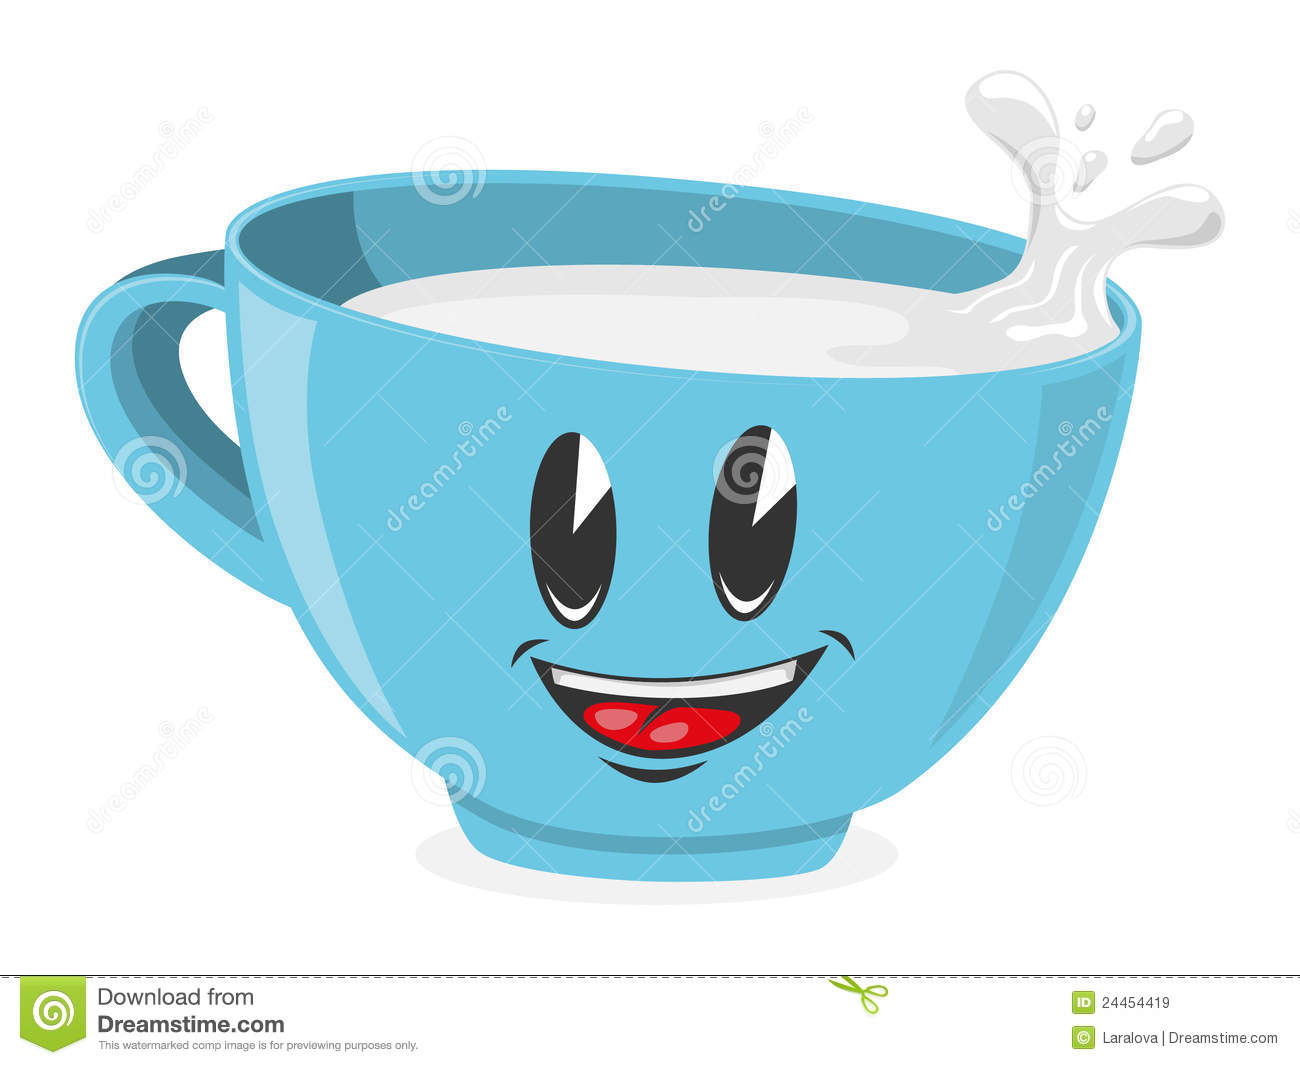 Cute Coffee Mug Wallpaper Cute Cup Of Milk Royalty Free Stock Images Image 24454419